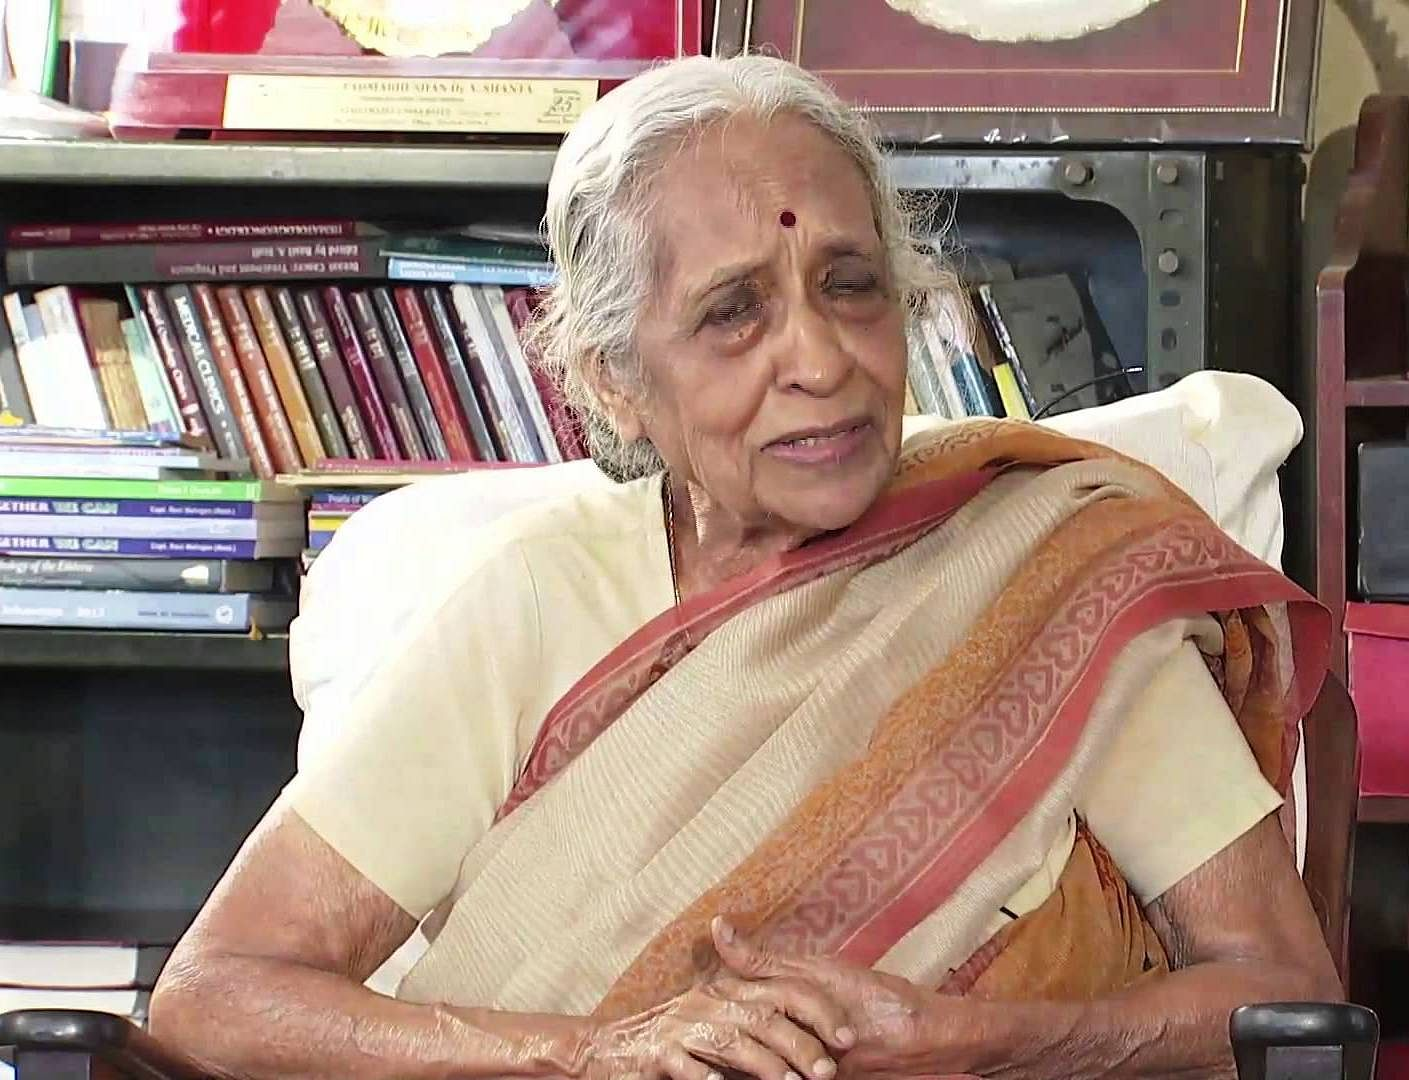 At 87, Dr V Shanta runs one of the busiest cancer hospitals in India with the same passion and enthusiasm as she did when she had started out nearly 60 years ago.